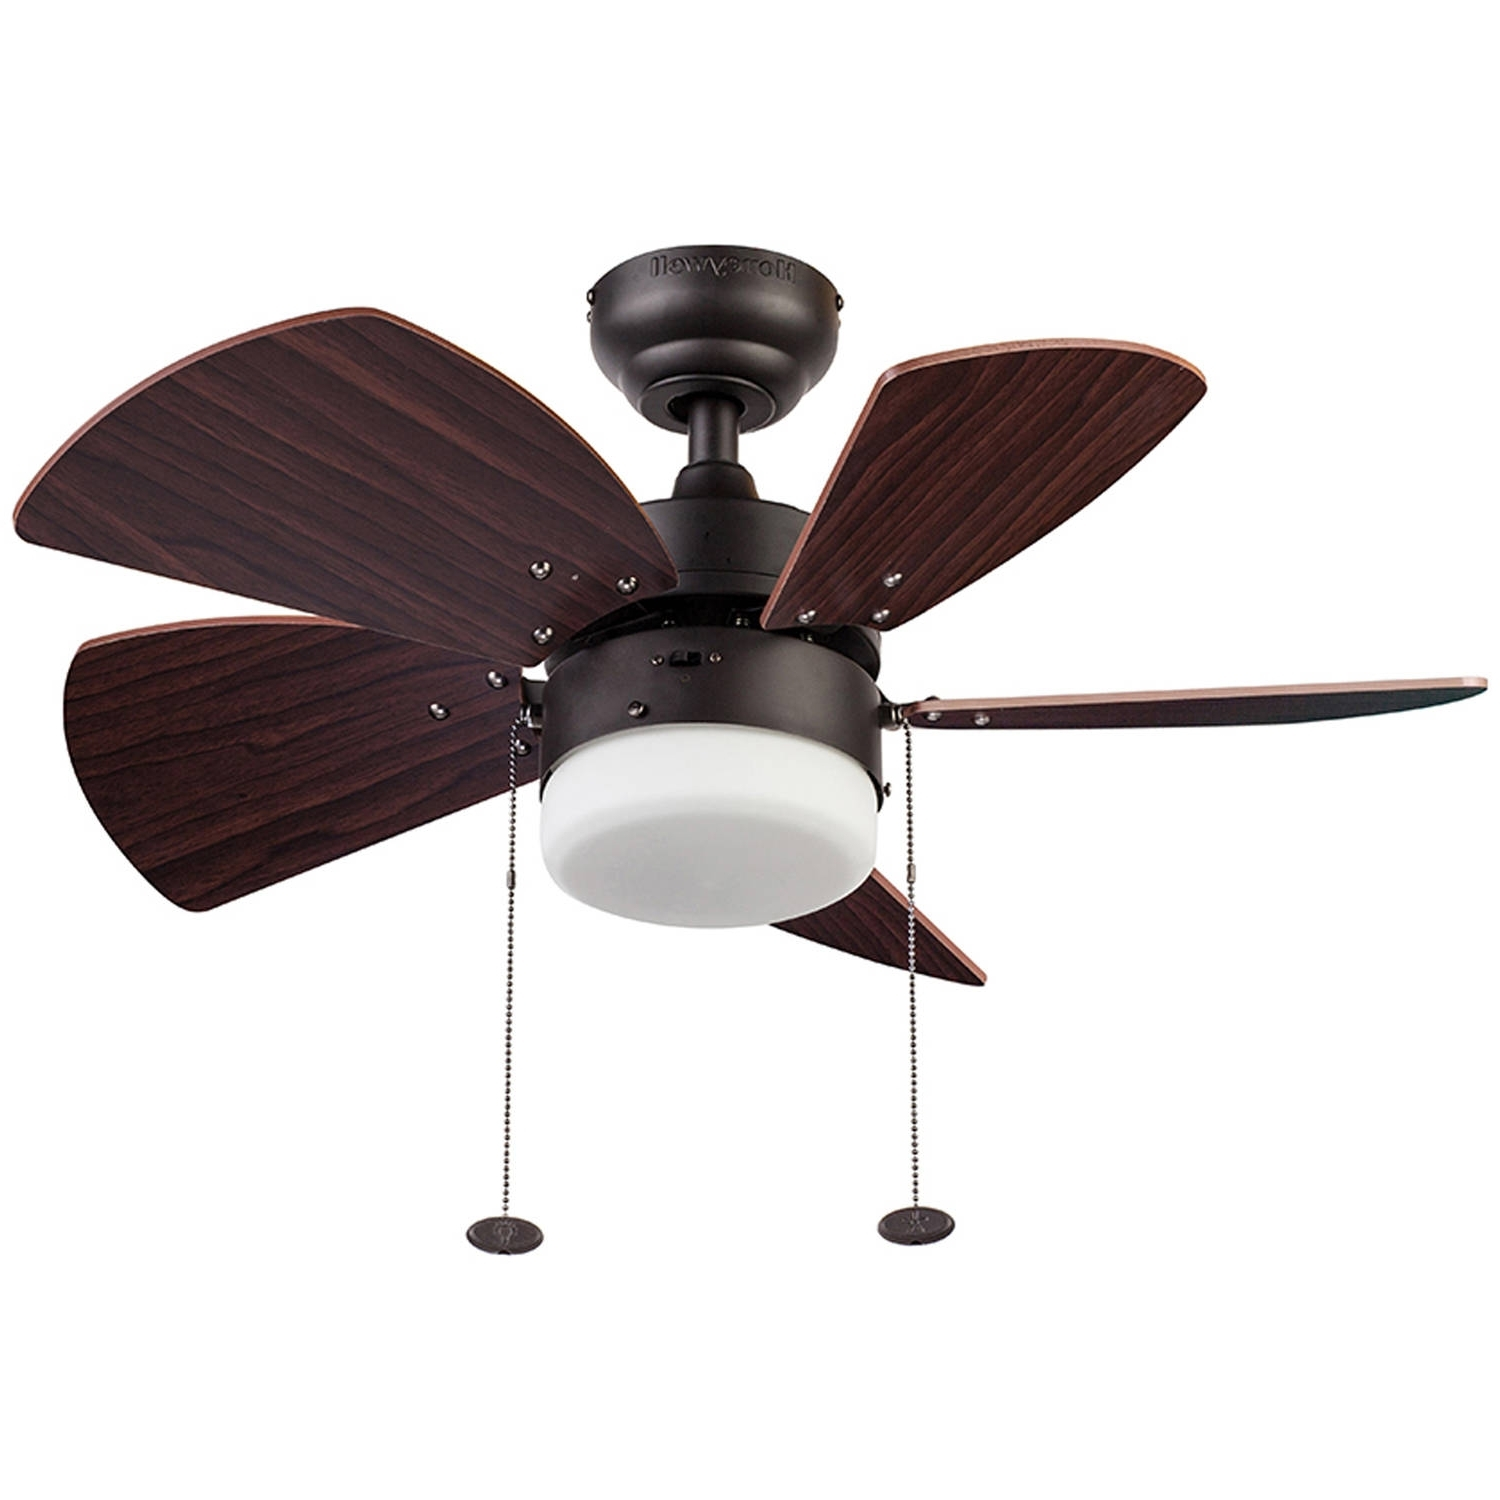 """Outdoor Ceiling Fans With Lights At Walmart Throughout Current 30"""" Honeywell Lenox Ceiling Fan, Bronze – Walmart (View 8 of 20)"""